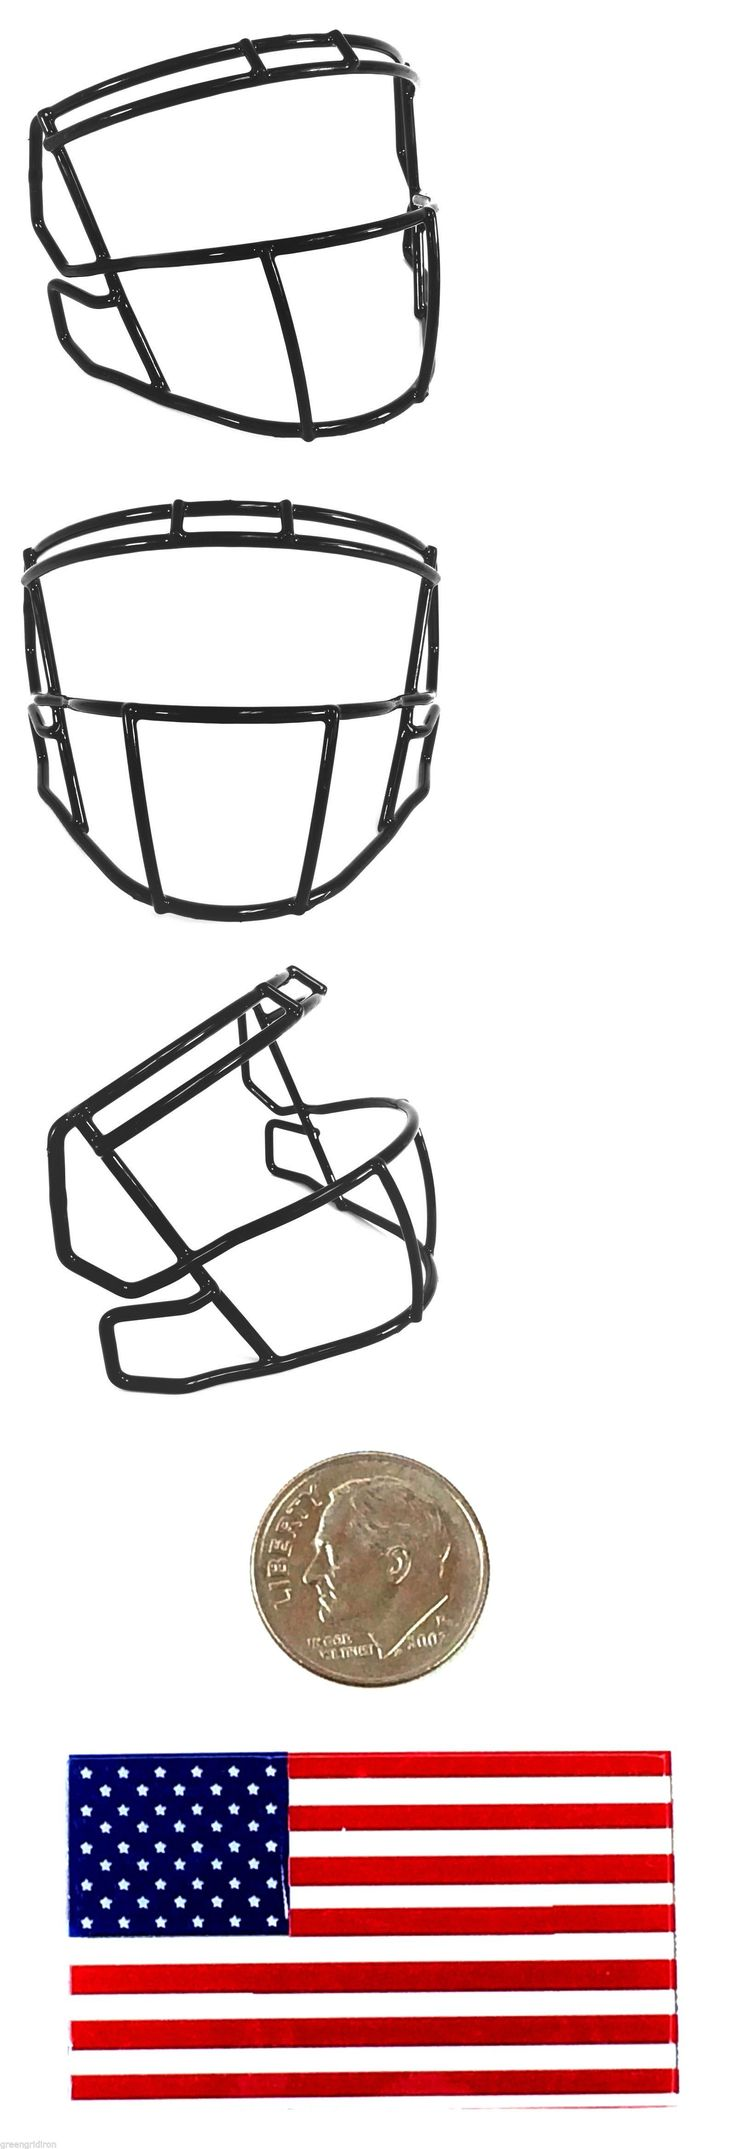 Helmets and Hats 21222: Riddell Speed S2bd-Sw-Hs4 Football Facemask - 30+ Colors Available -> BUY IT NOW ONLY: $80 on eBay!